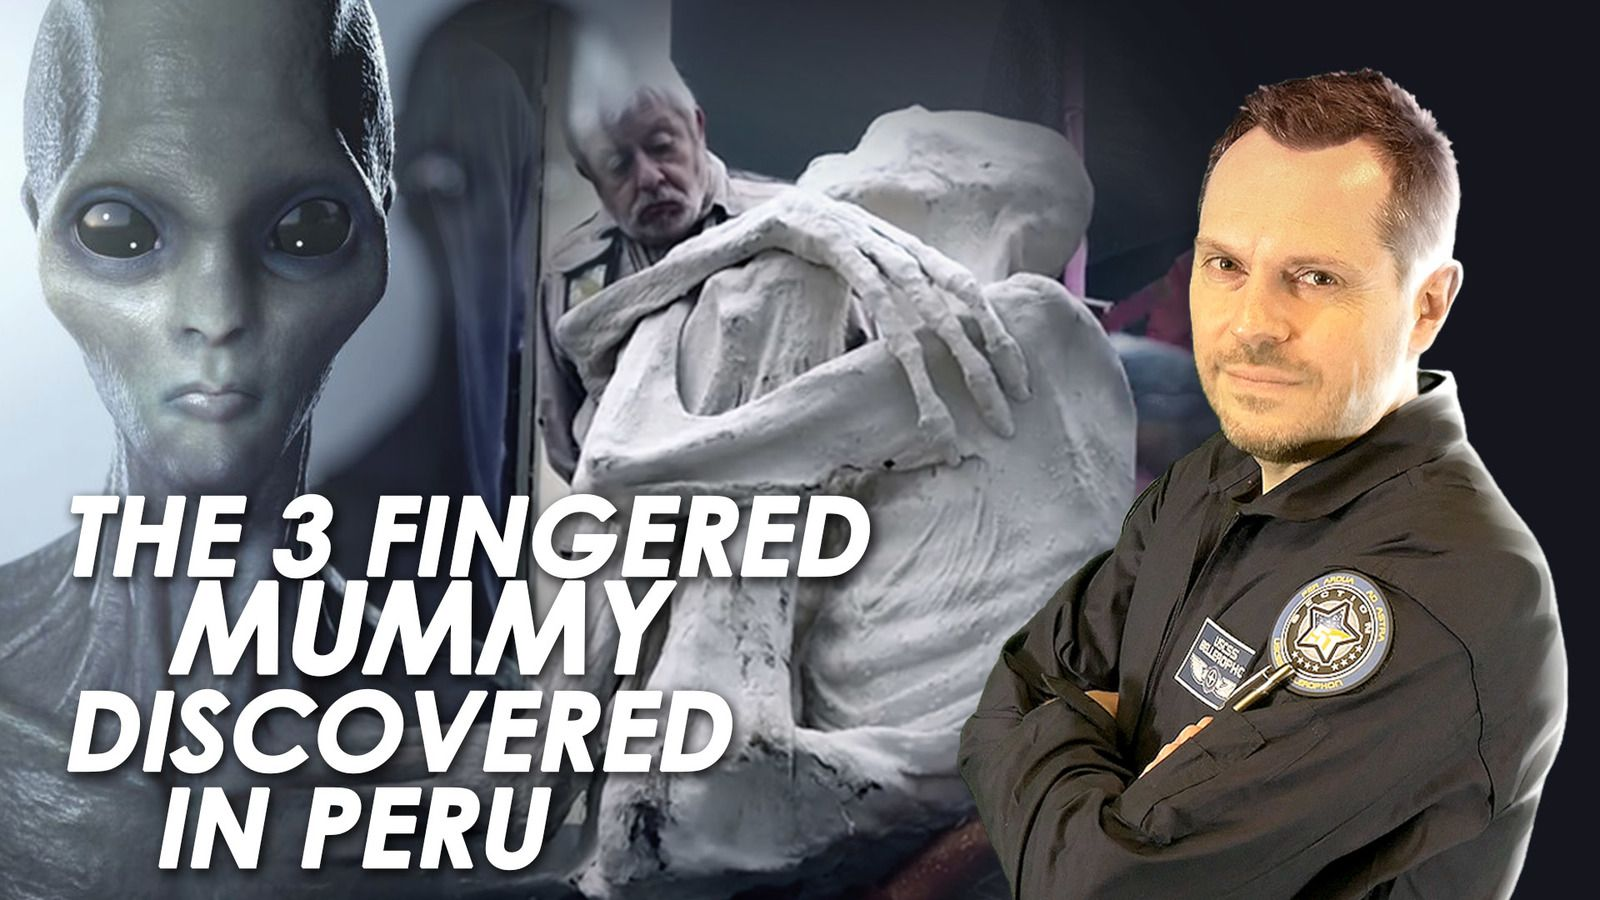 👽 The Three Fingered Mummy In Peru Could Have Alien Origins